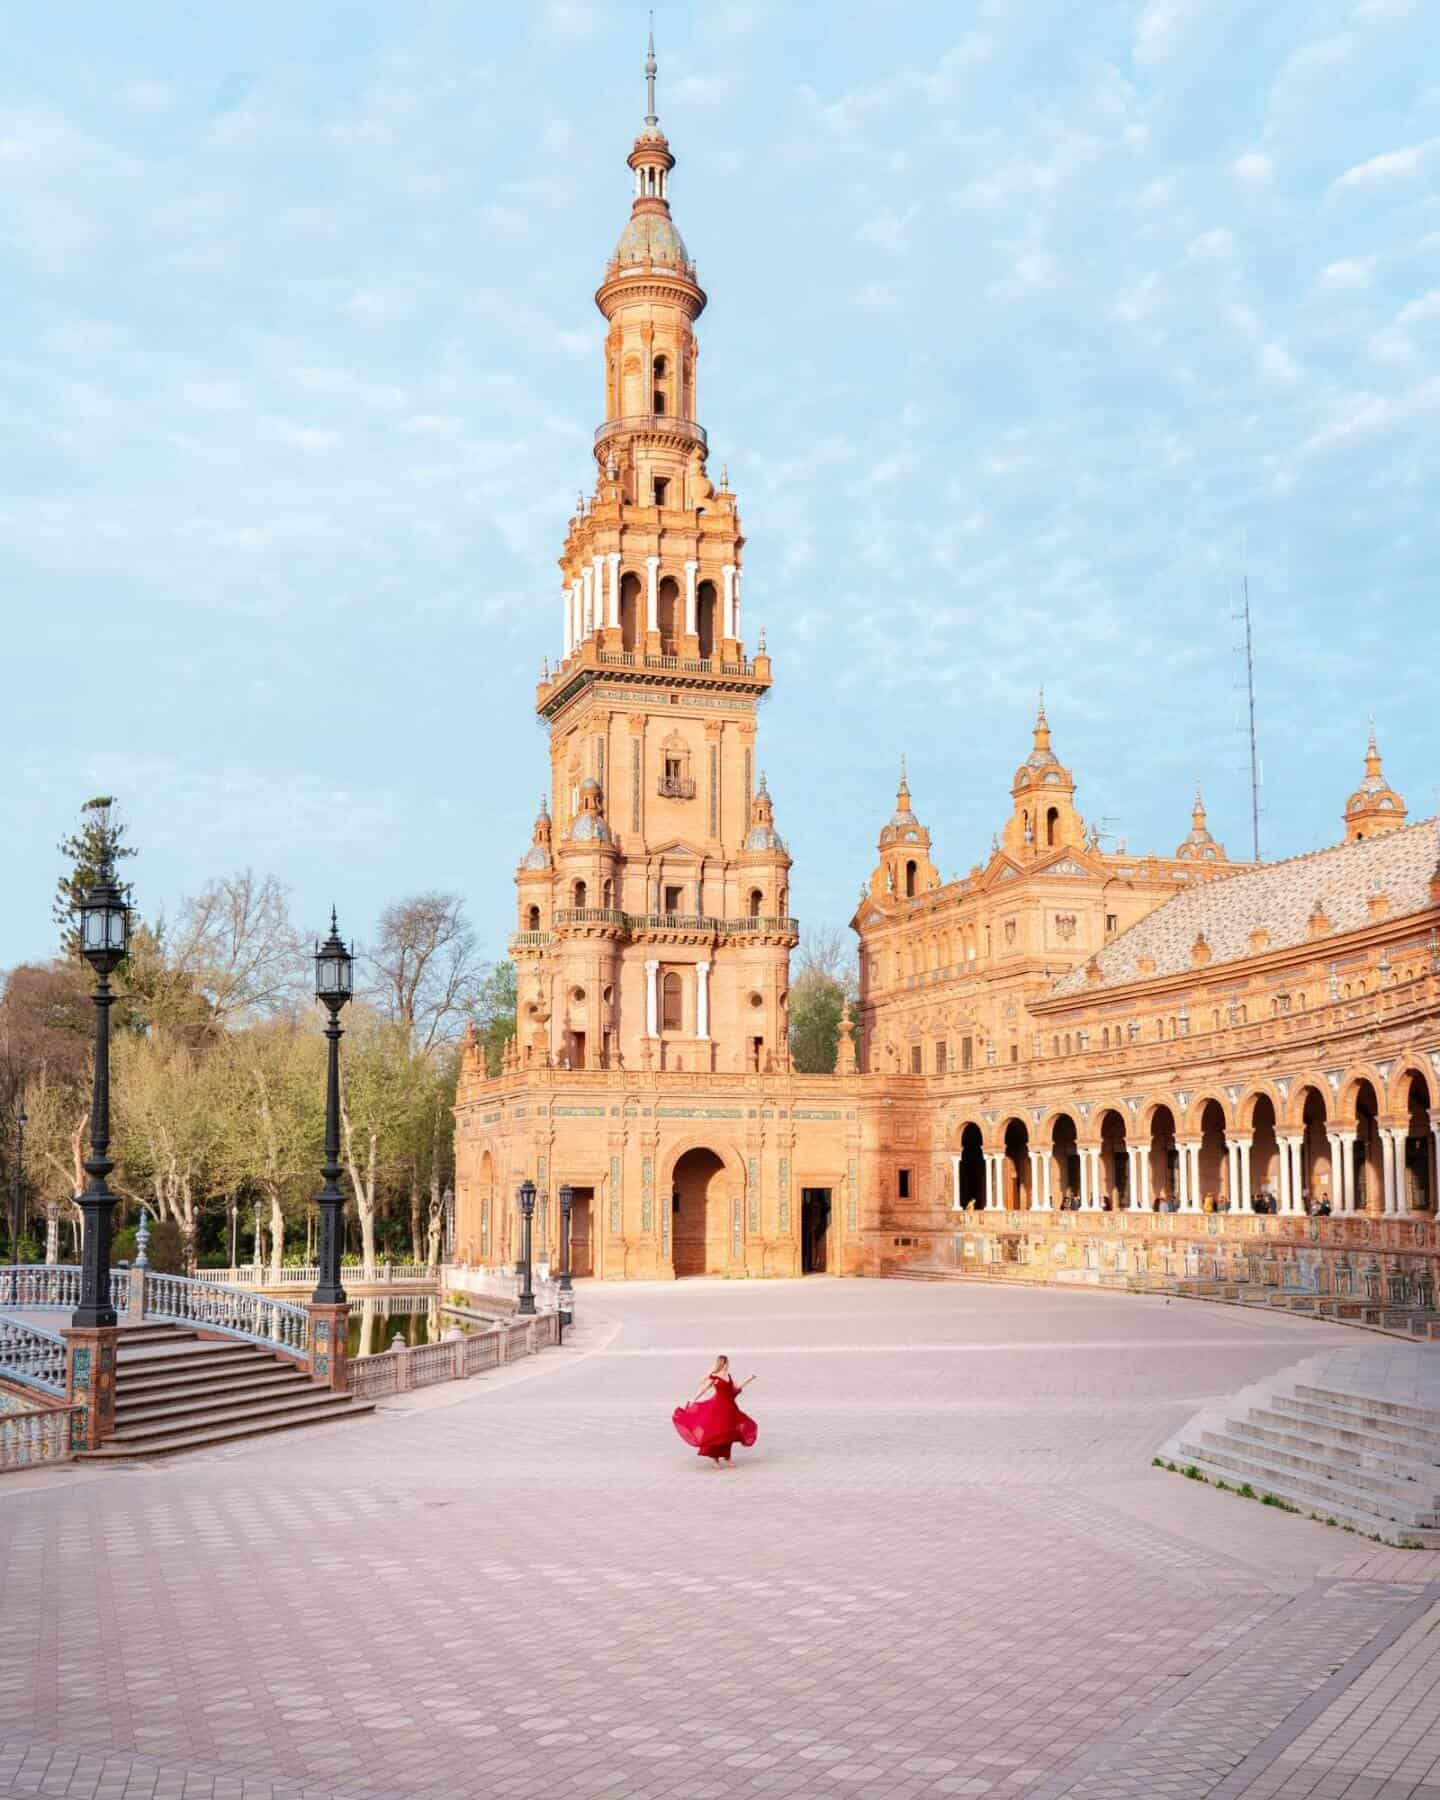 Plaza de España Seville empty except a girl in a red dress